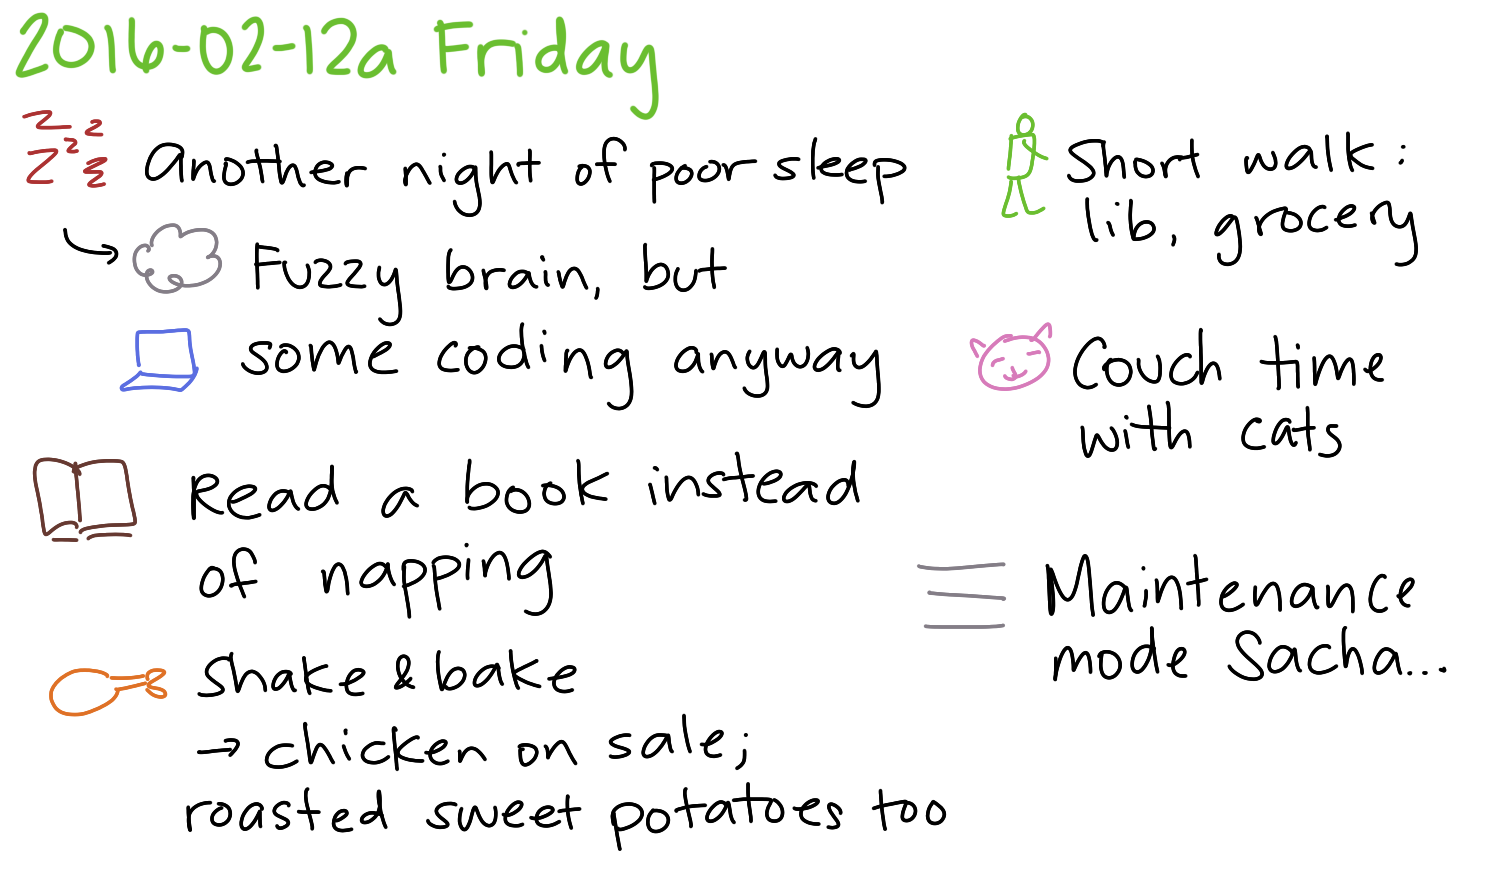 2016-02-12a Friday -- index card #journal.png